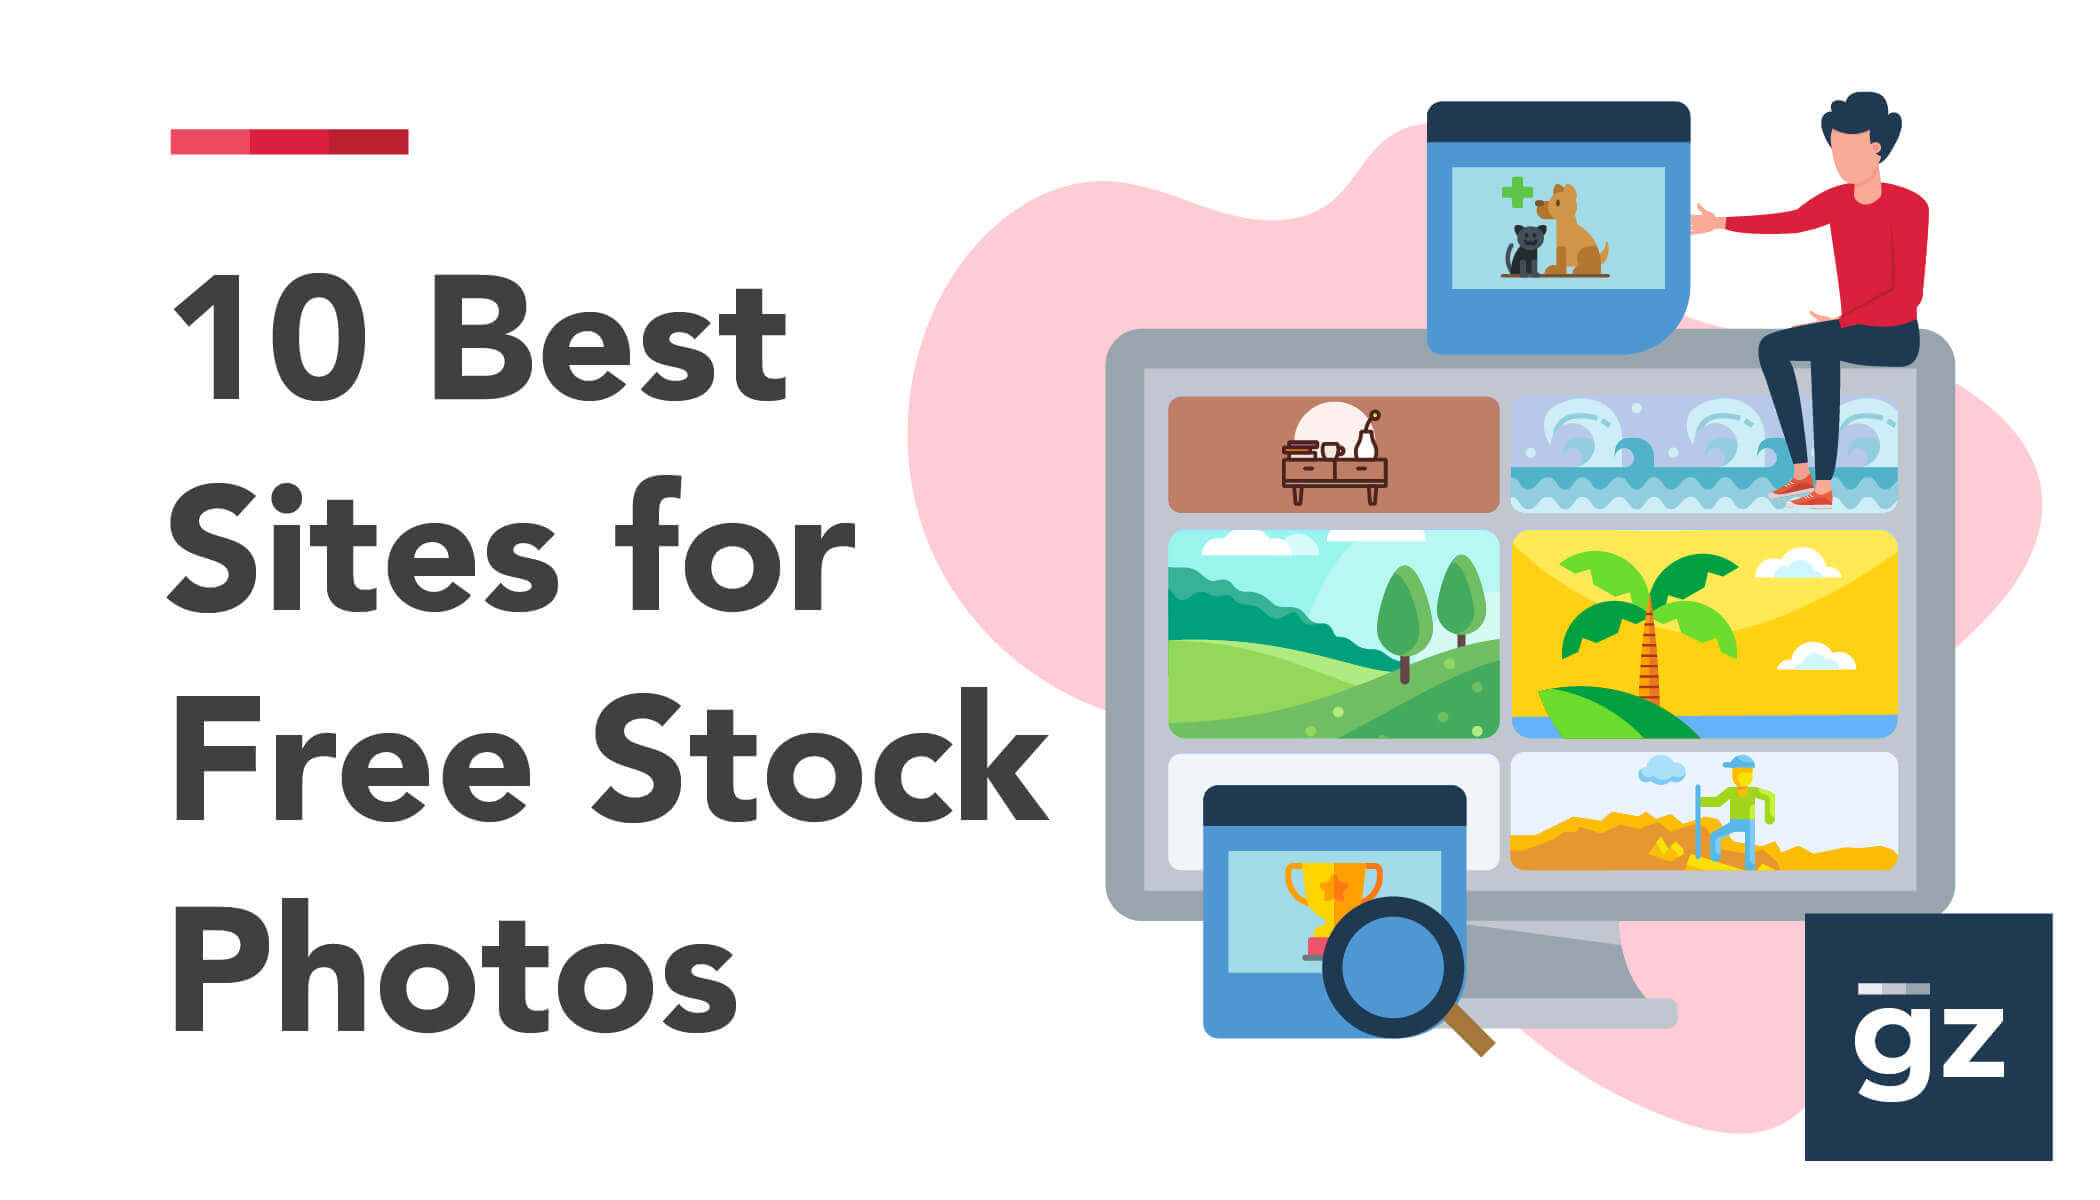 10 Best Sites for Free Stock Photos